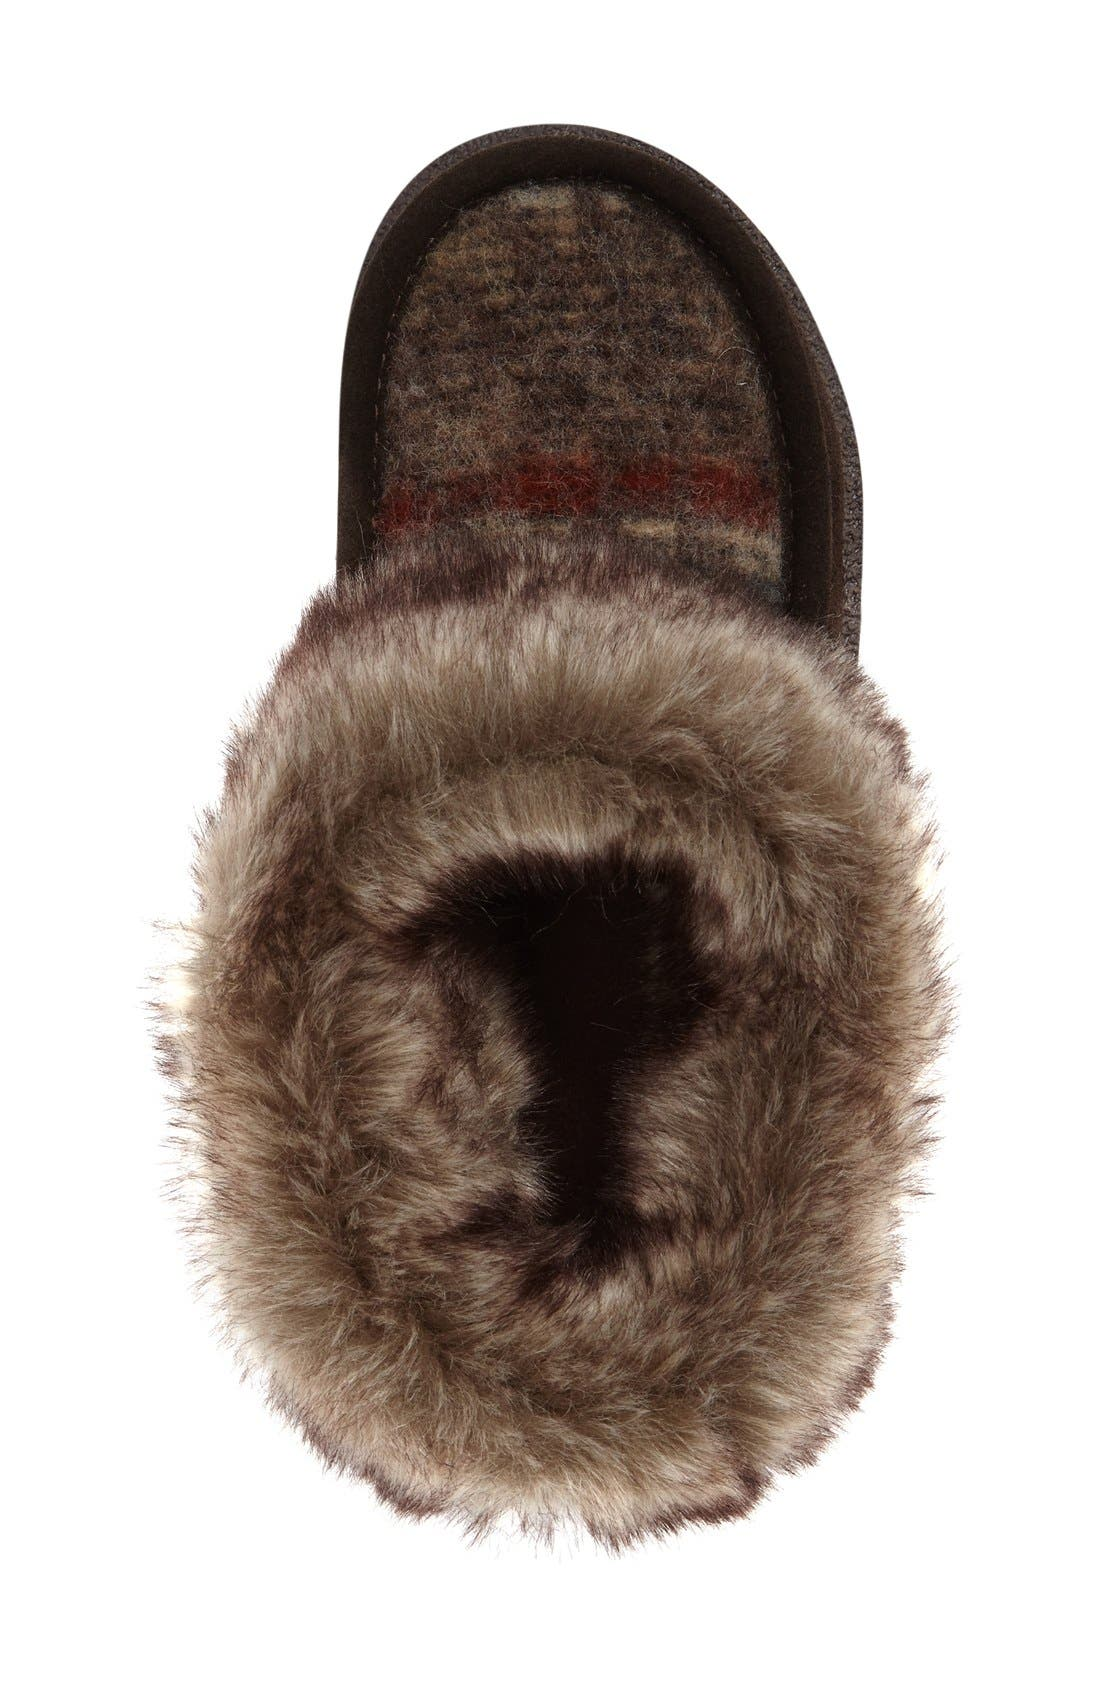 Autumn Ridge Slipper Bootie,                             Alternate thumbnail 3, color,                             Java/ Blanket Wool